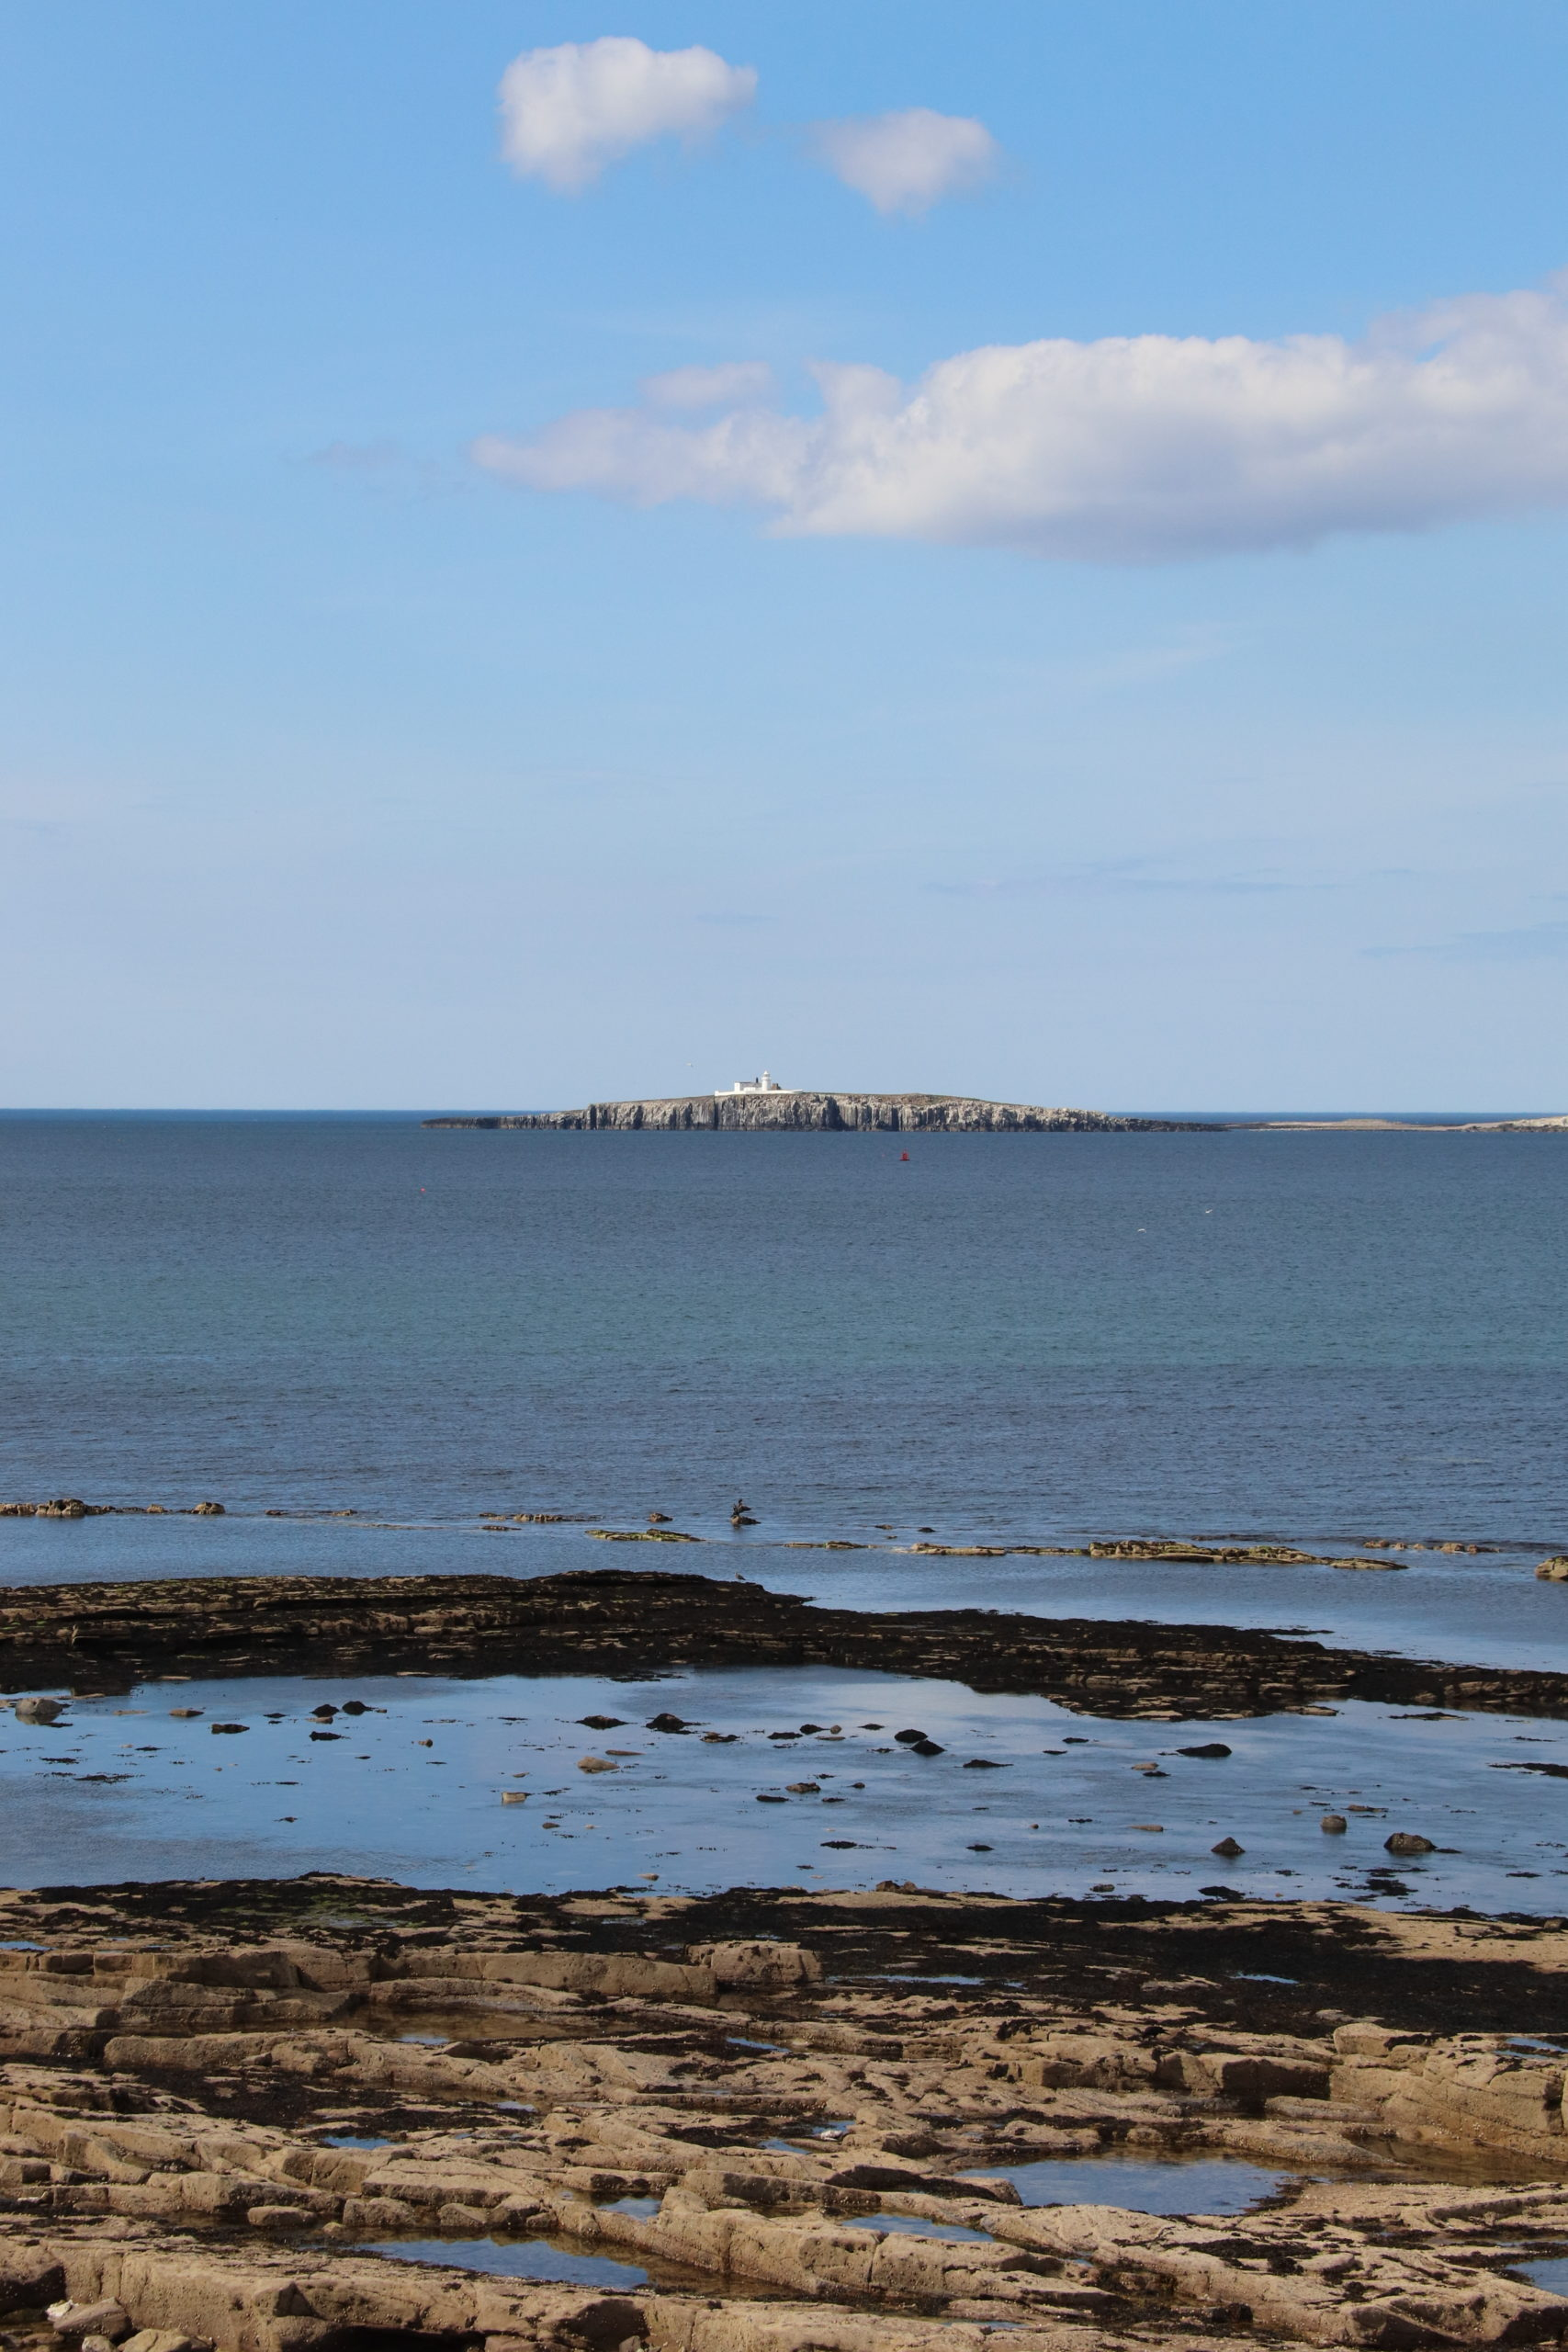 A view of the Farne Islands from Seahouses. There is a white building on the nearest island which is Inner Farne.